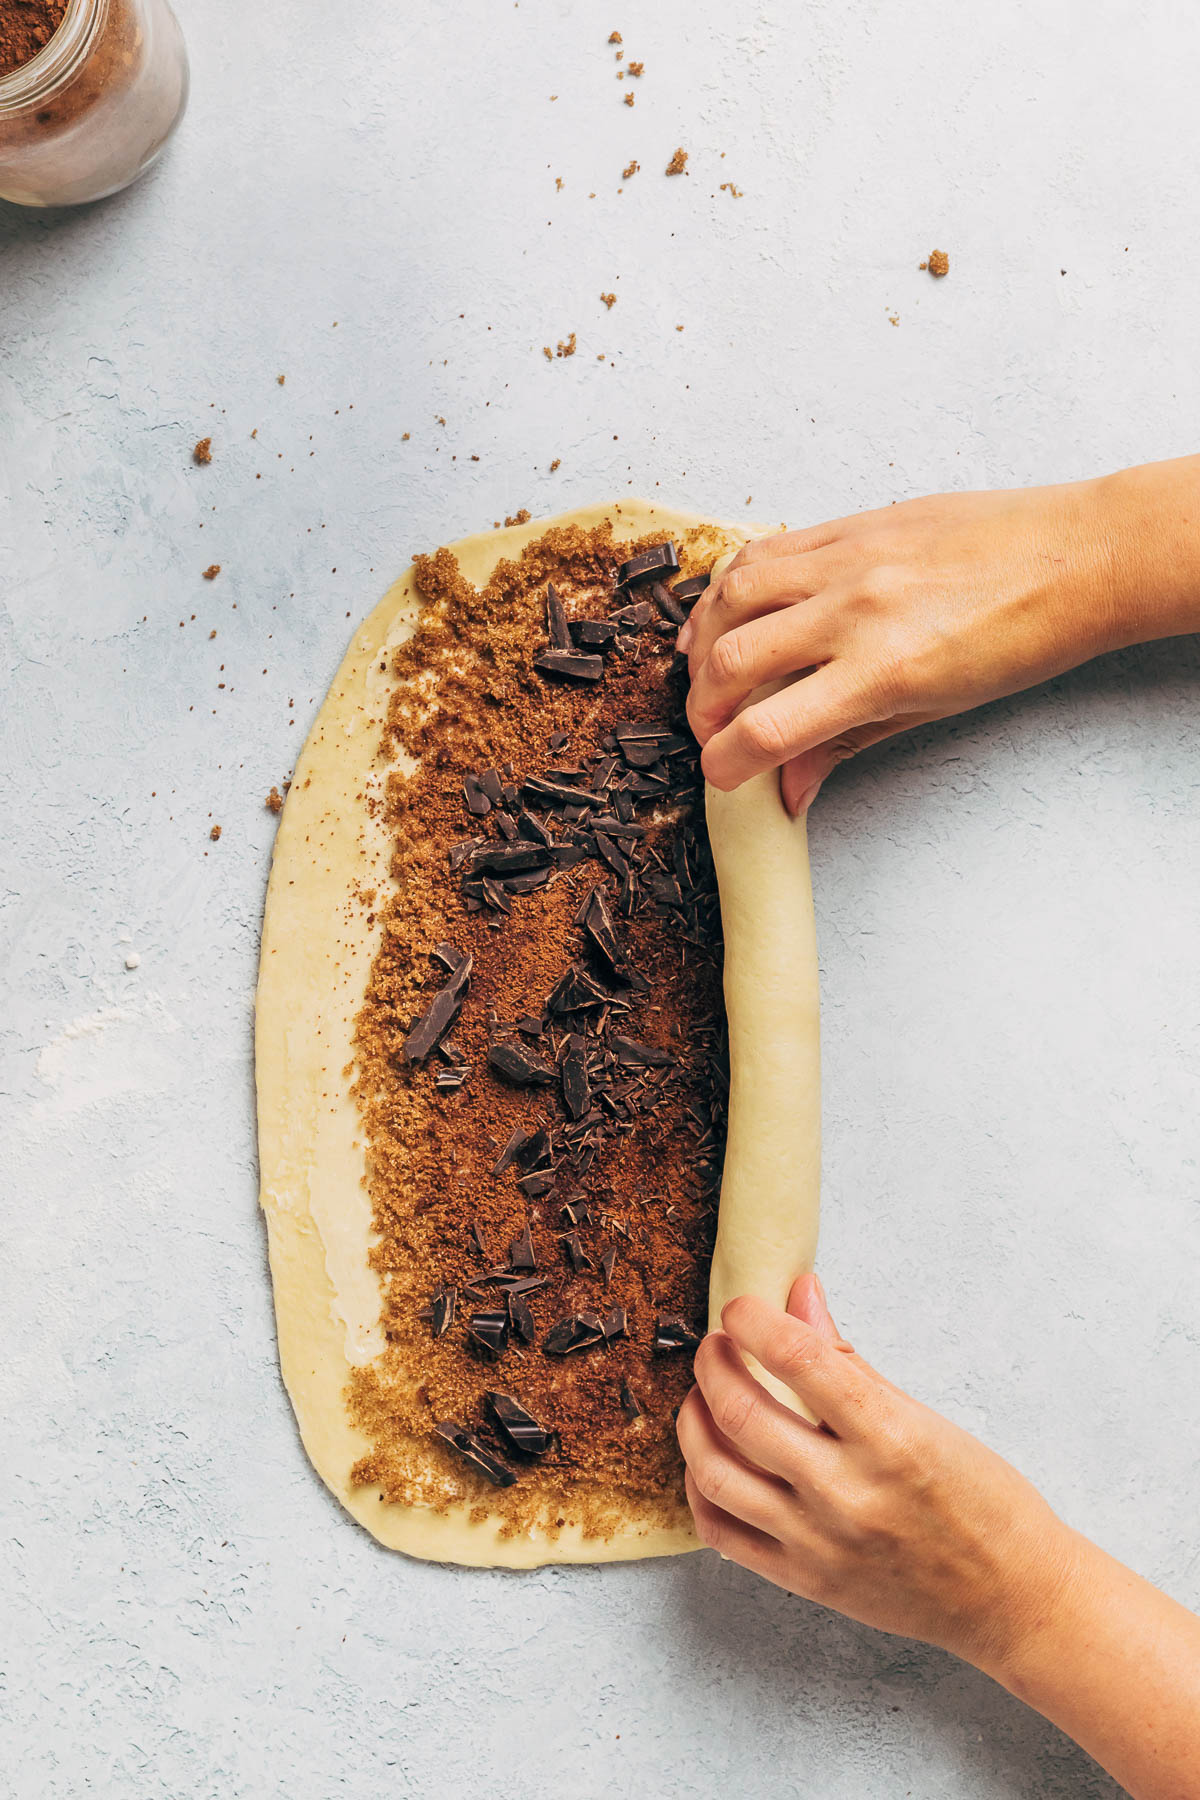 Woman's hands rolling dough into a log.